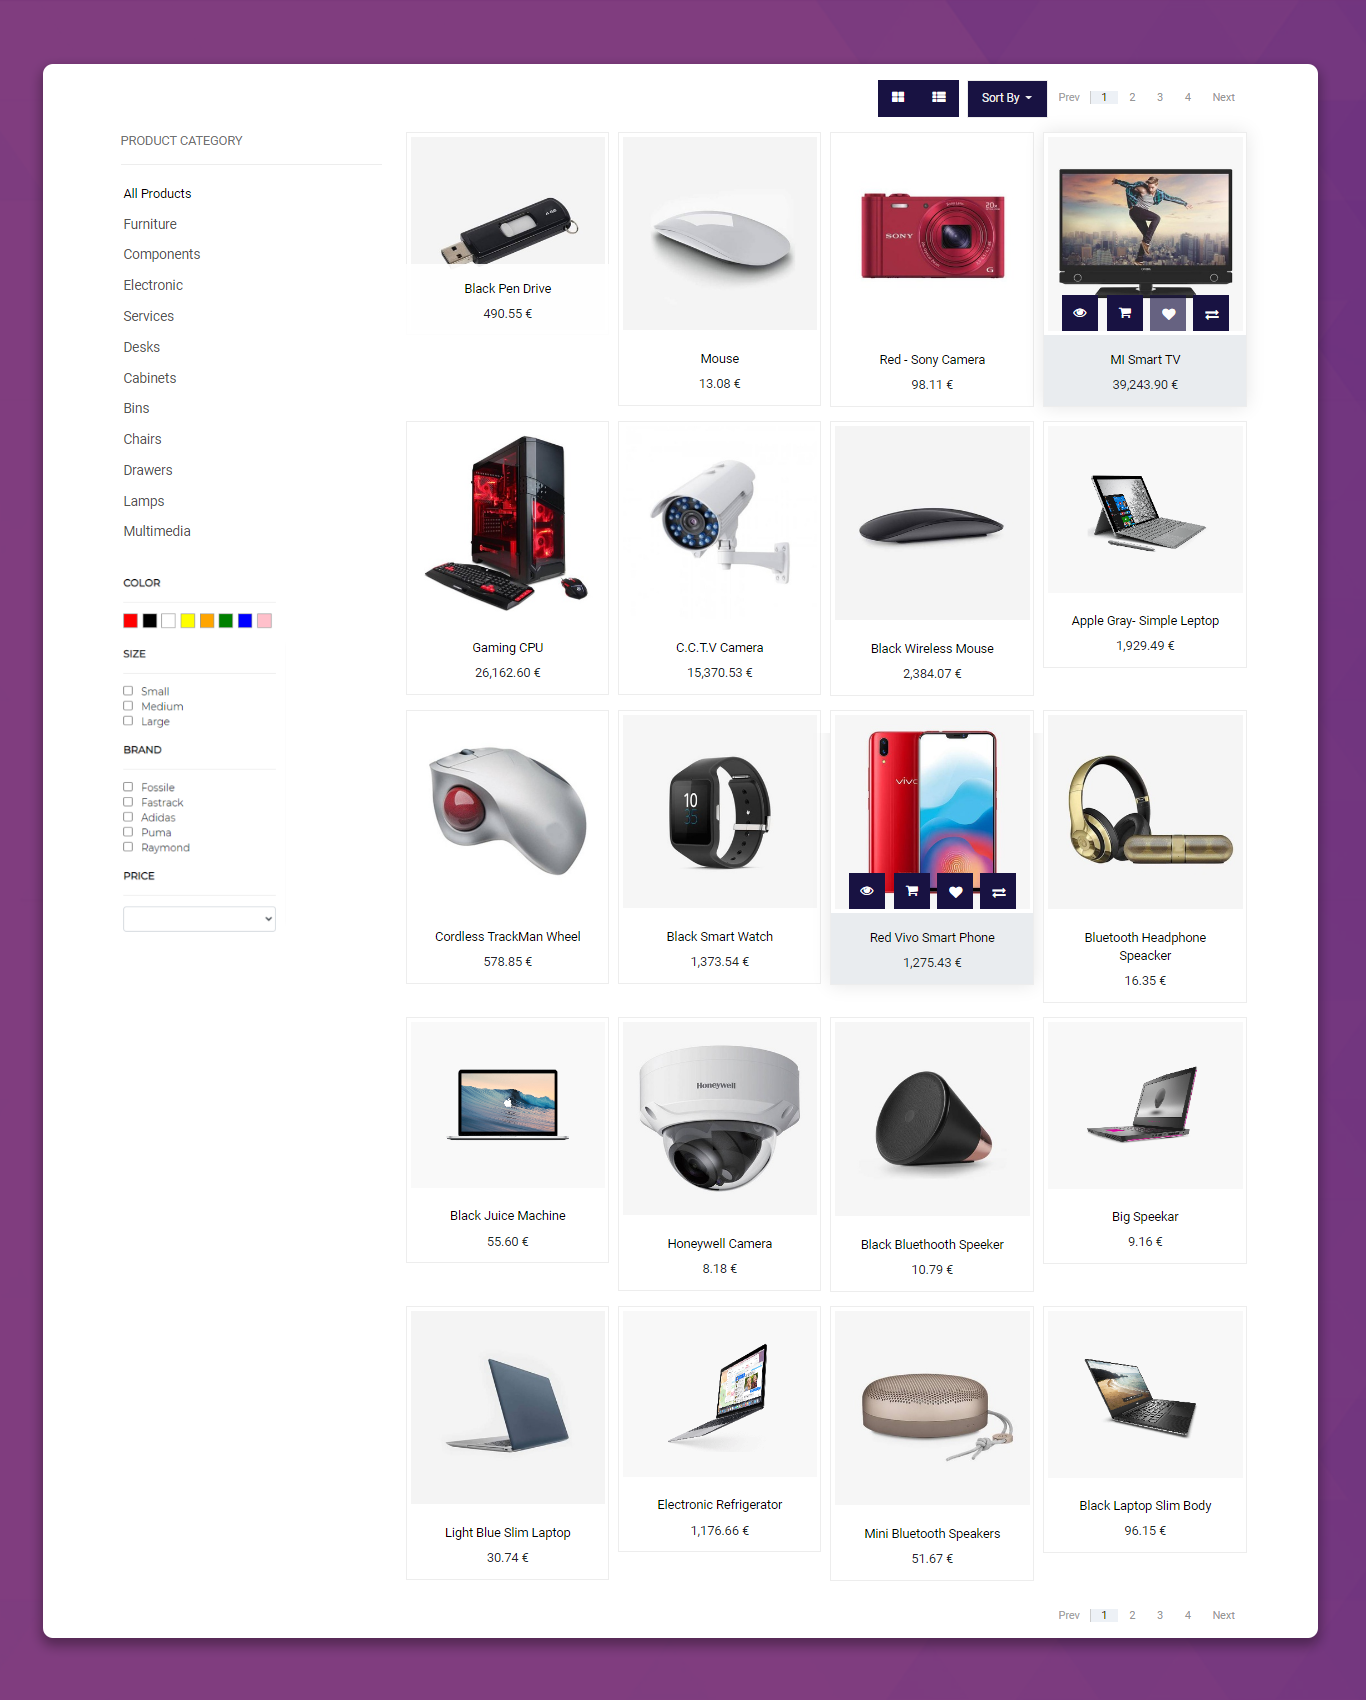 odoo themes download, best theme for odoo 14 enterprise, e-Commerce odoo themes, muli language supported odoo themes